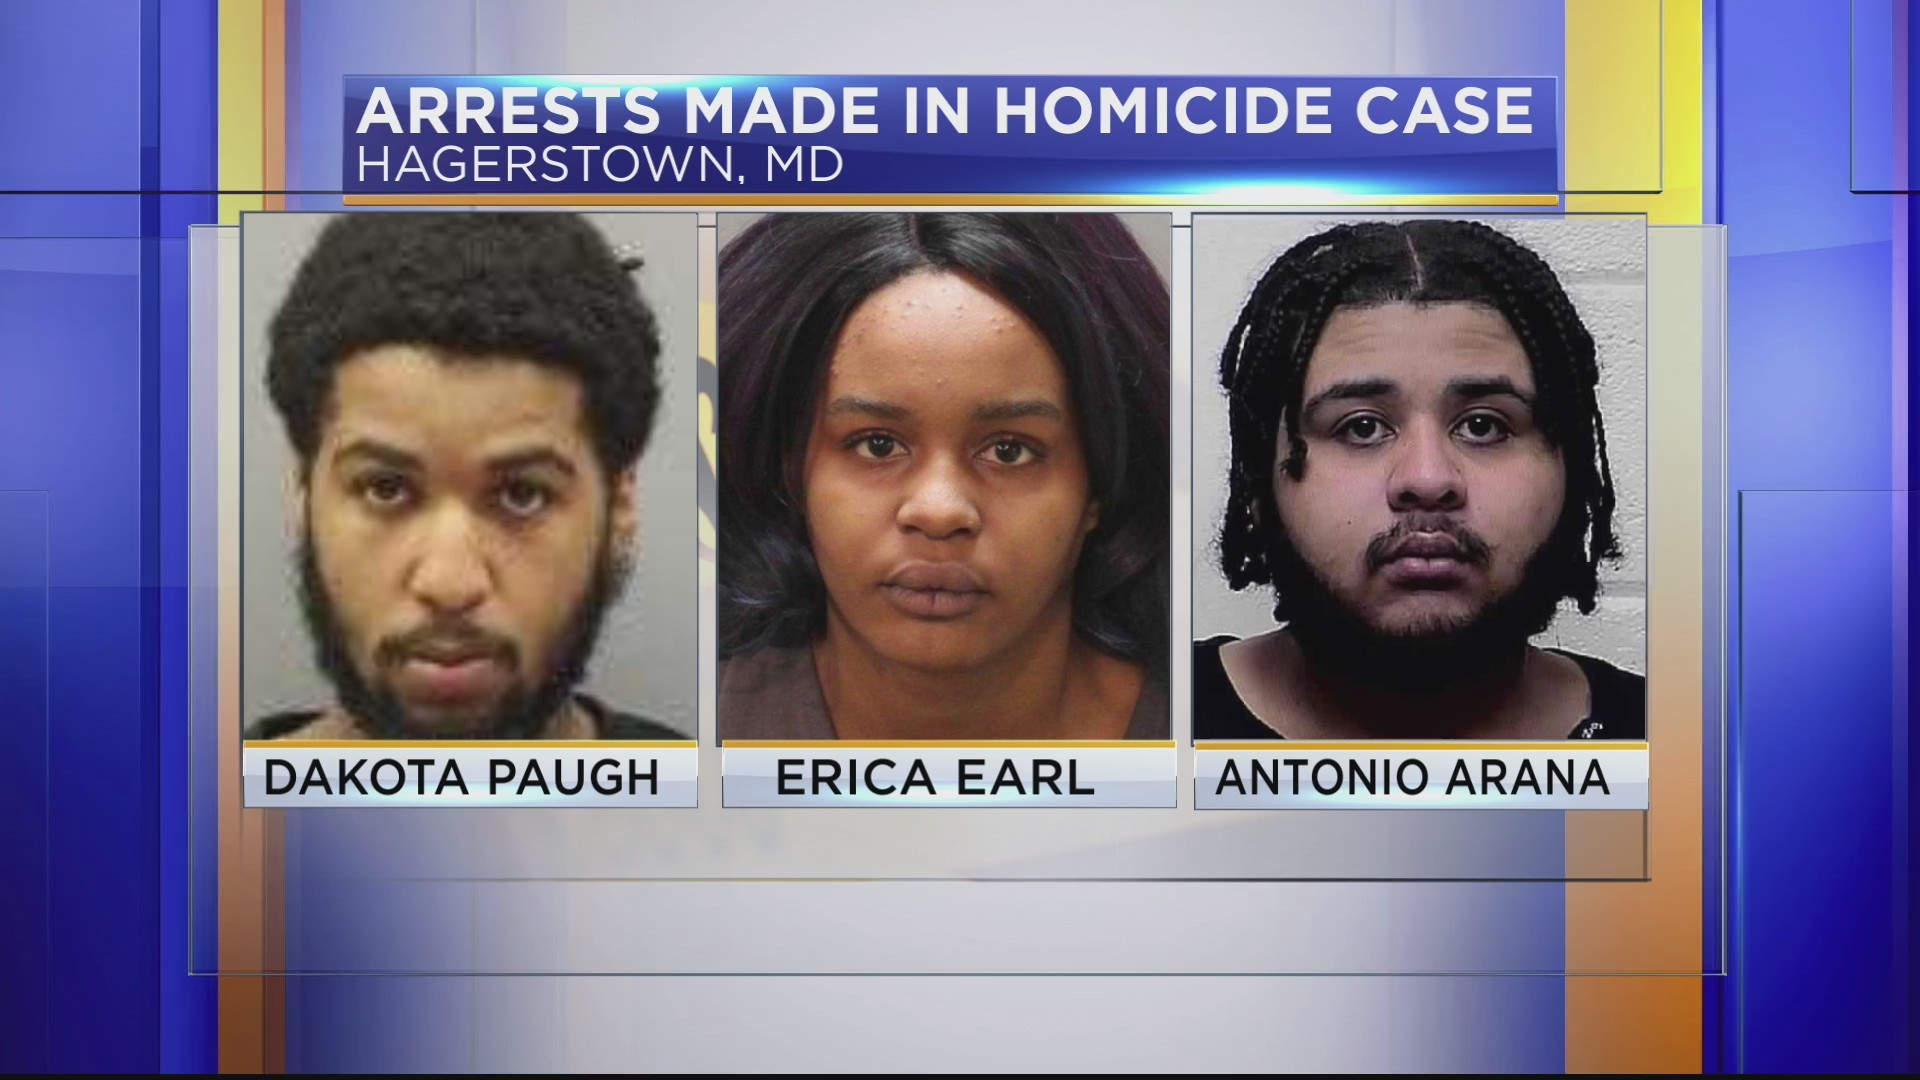 Three suspects arrested in connection with Hagerstown homicide